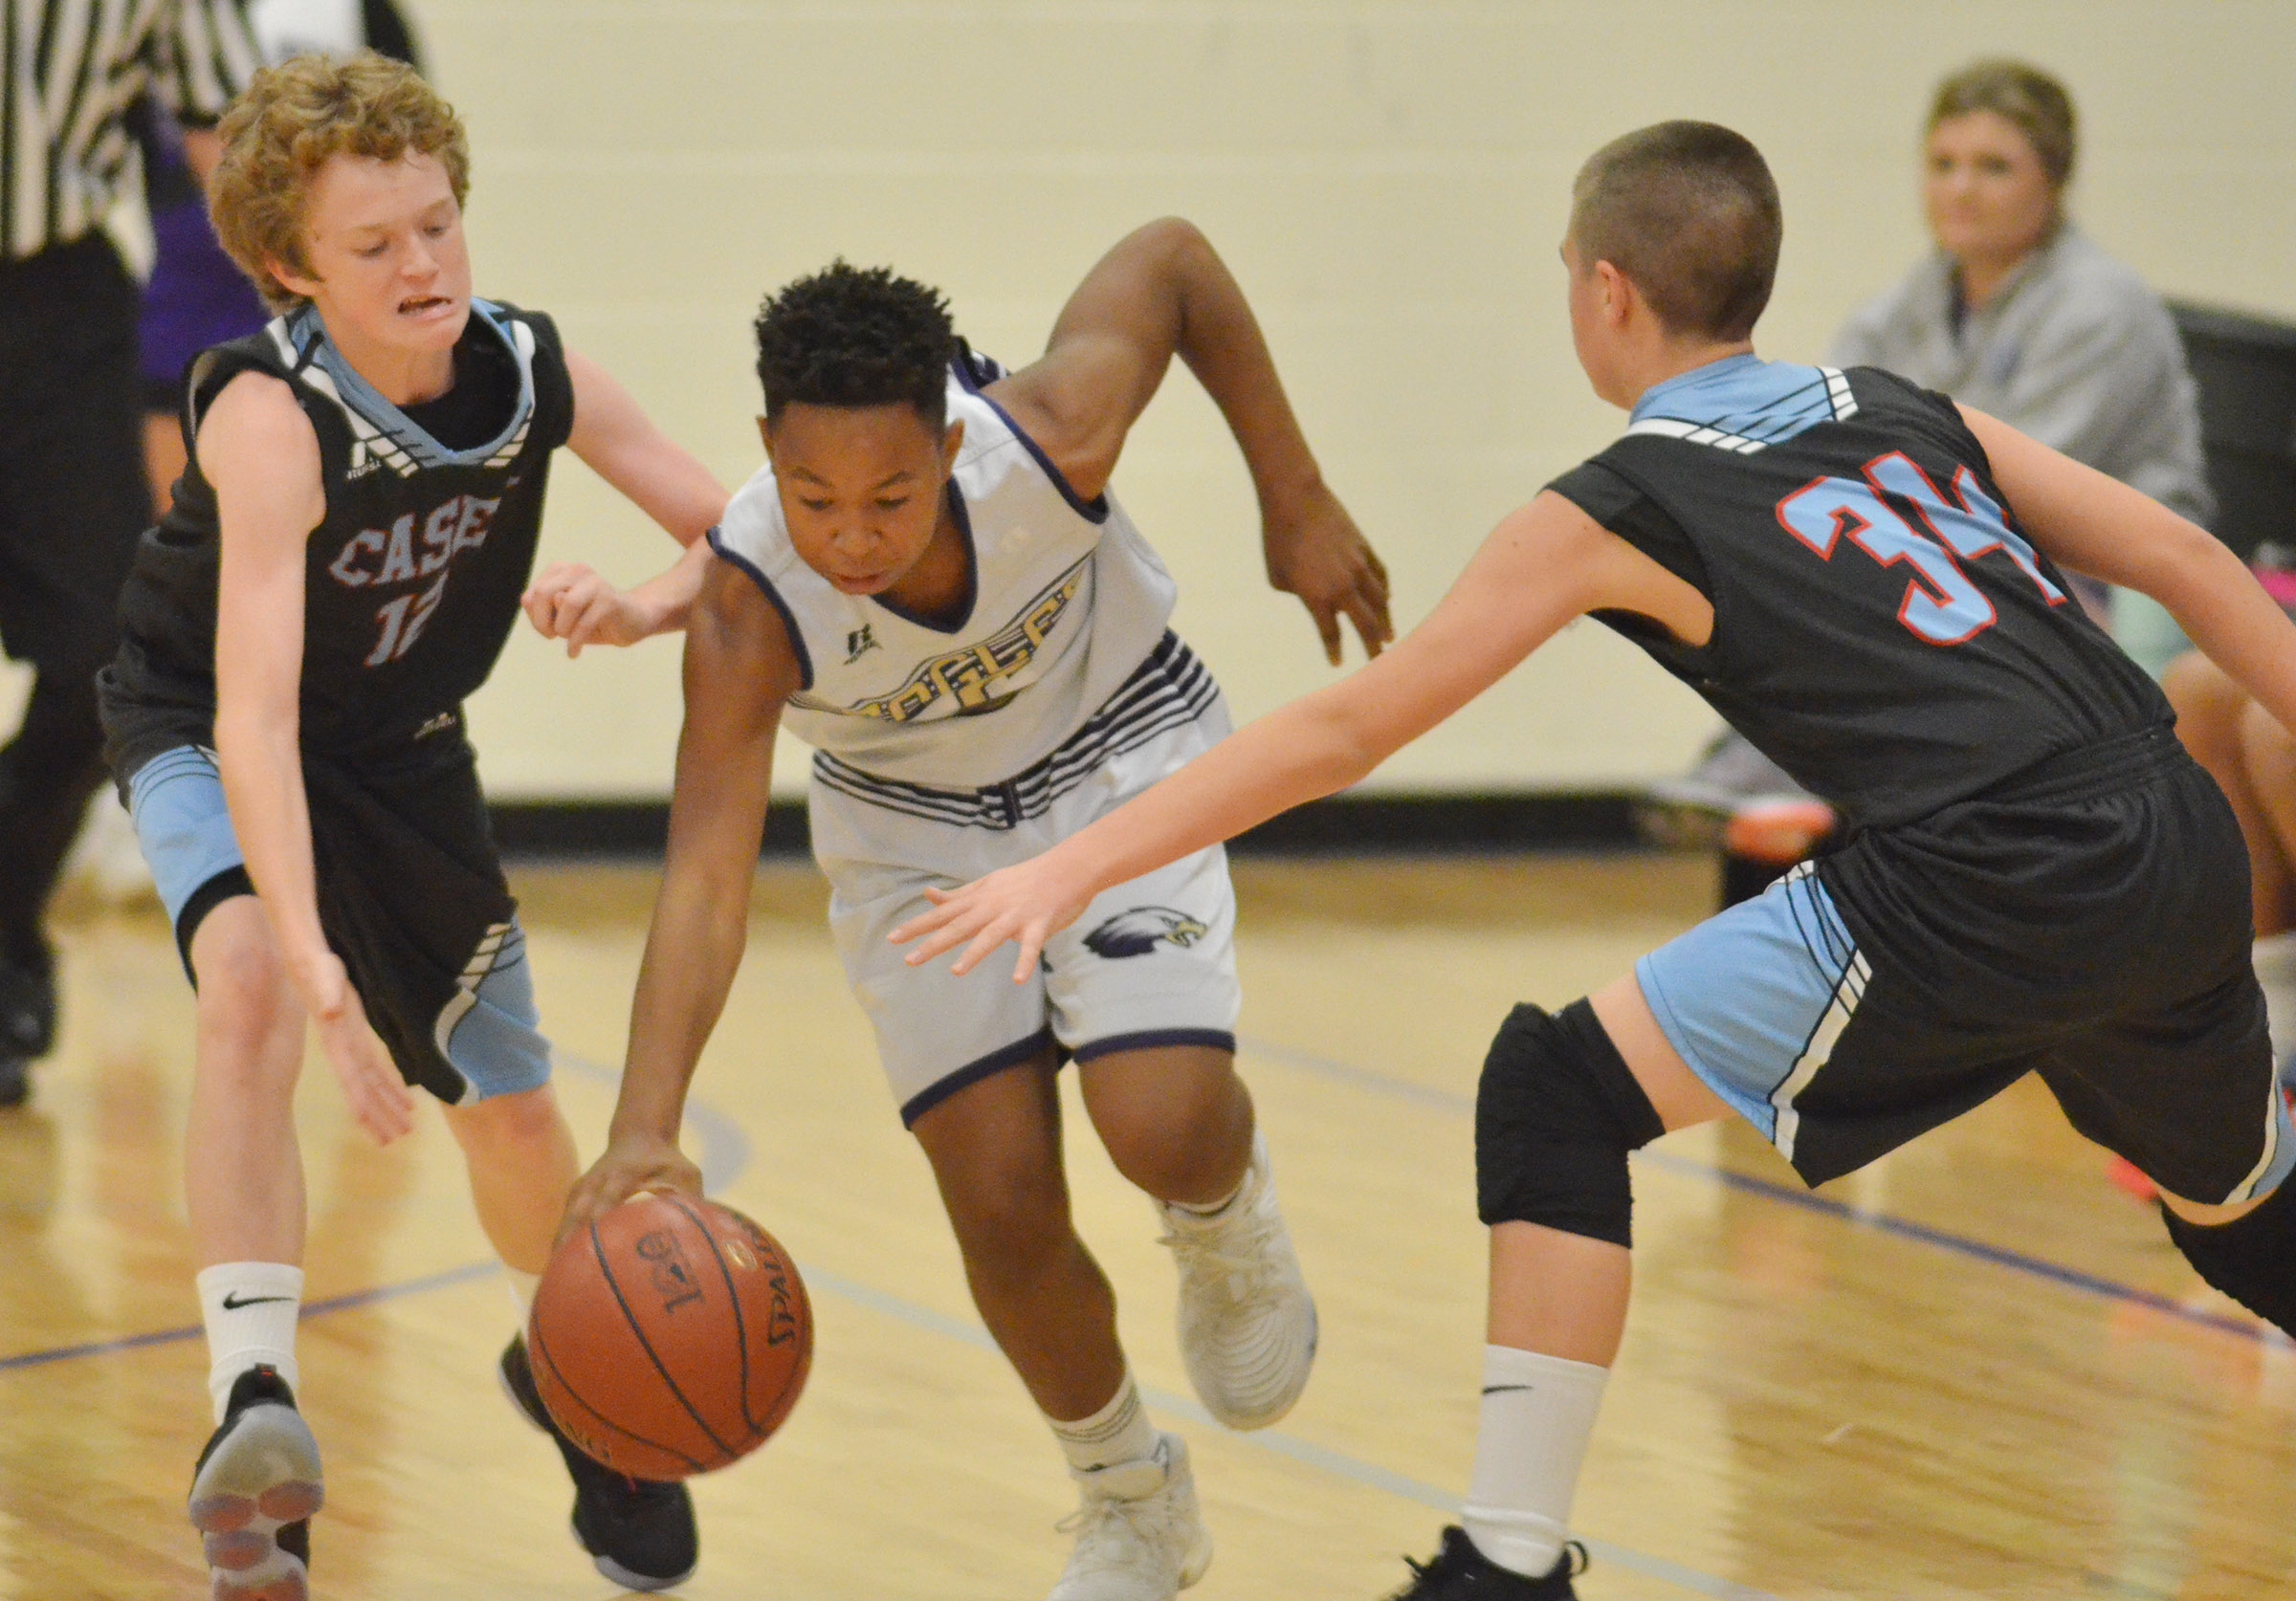 CMS seventh-grader Deondre Weathers protects the ball.